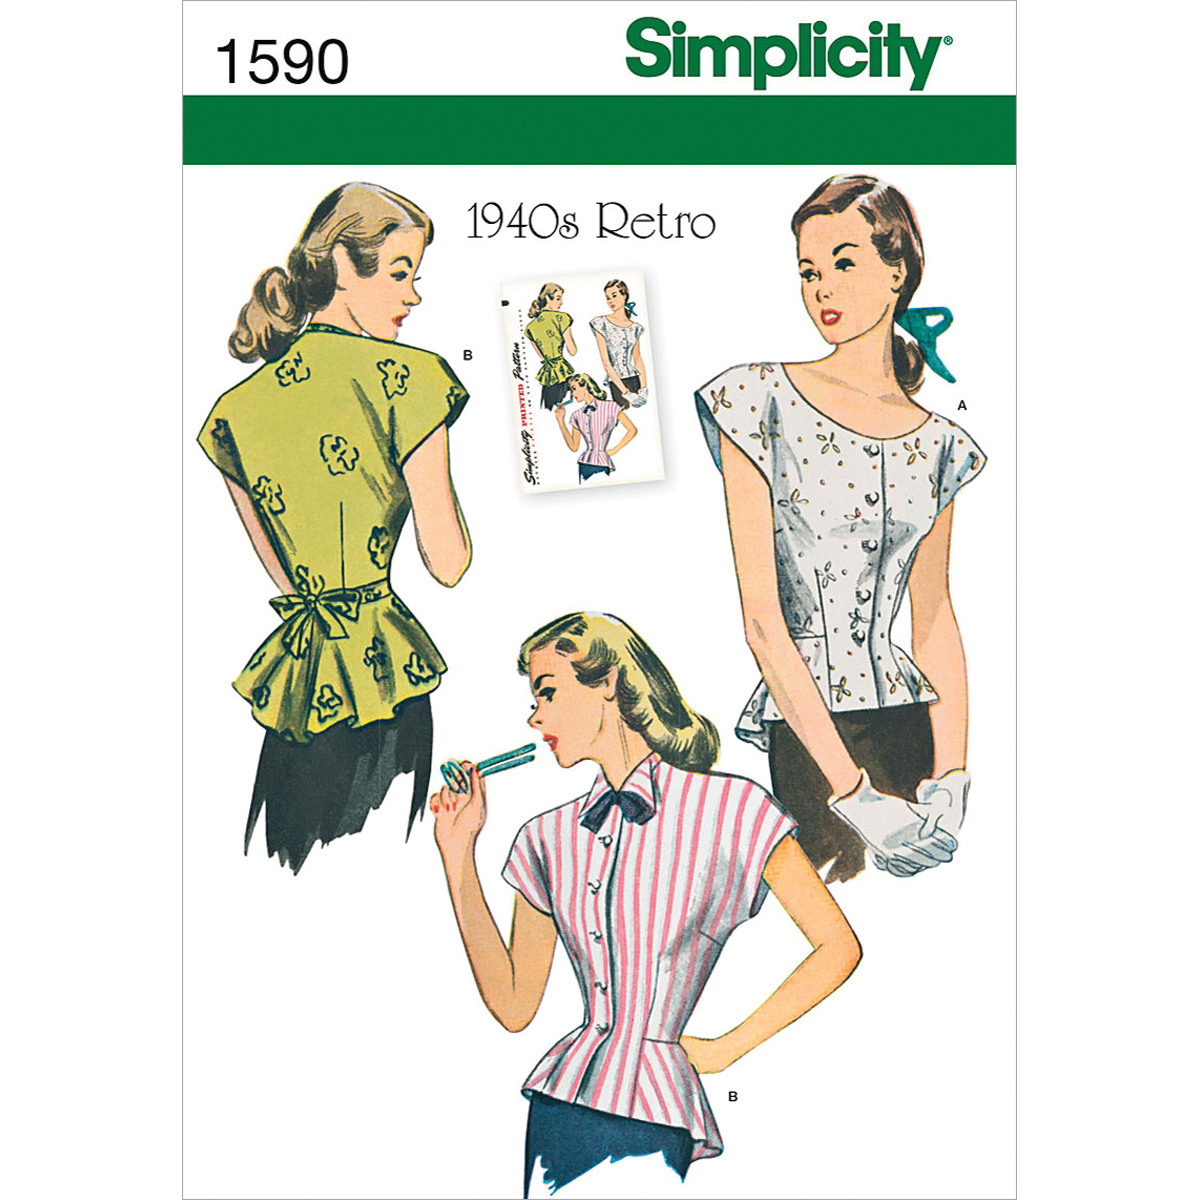 Simplicity Pattern 1590U5 16-18-20-2-Misses Tops Vests